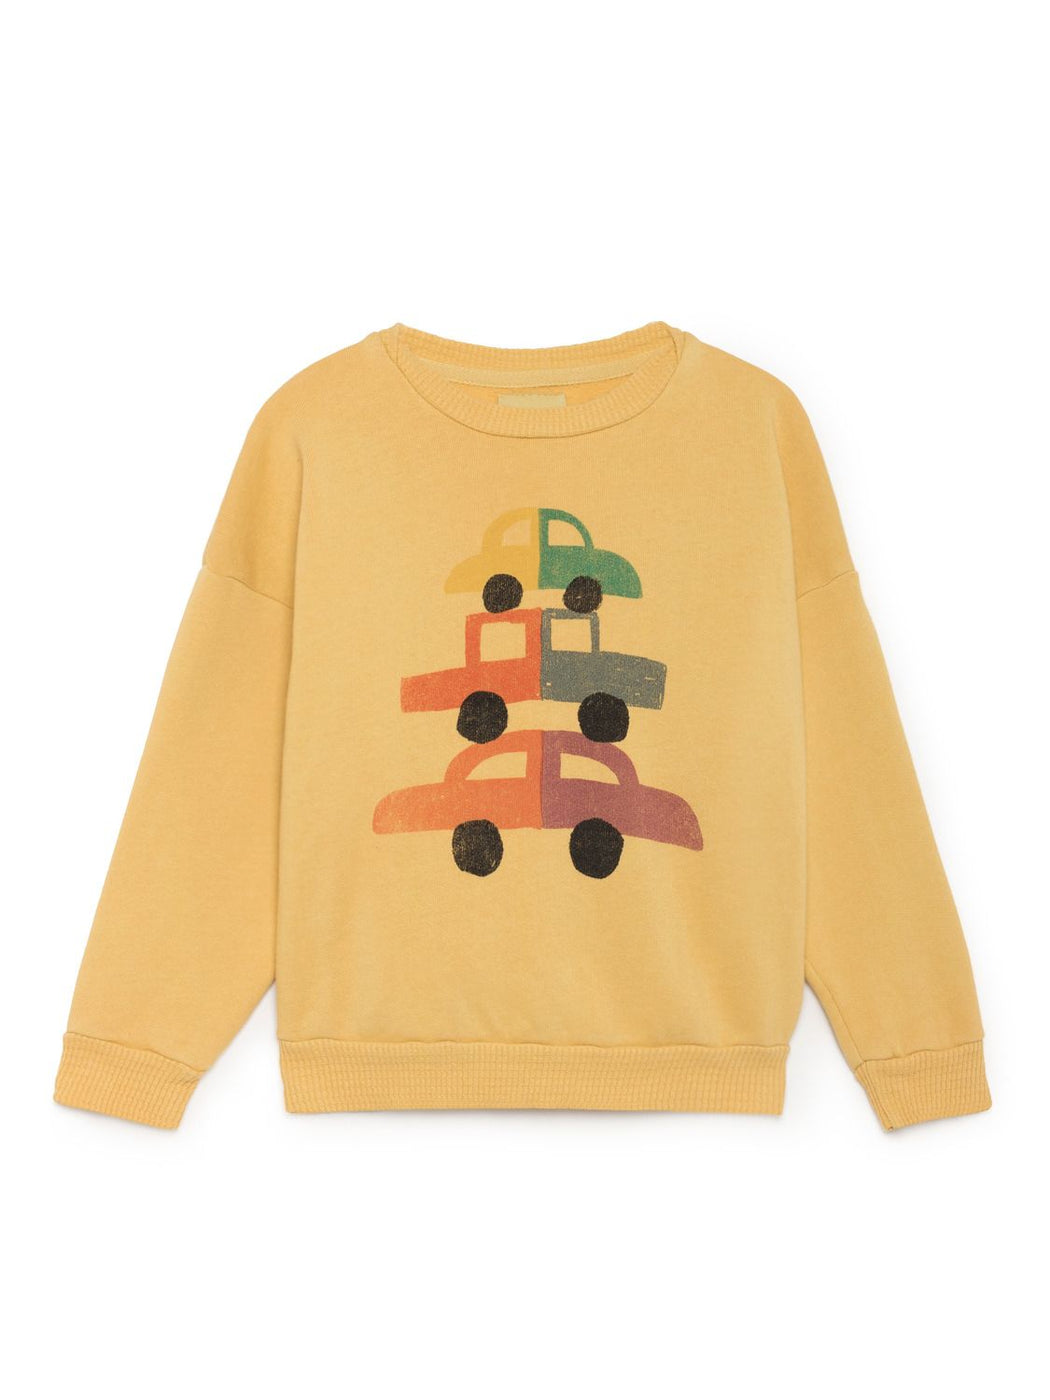 Bobo Choses Cars Round Neck Sweatshirt